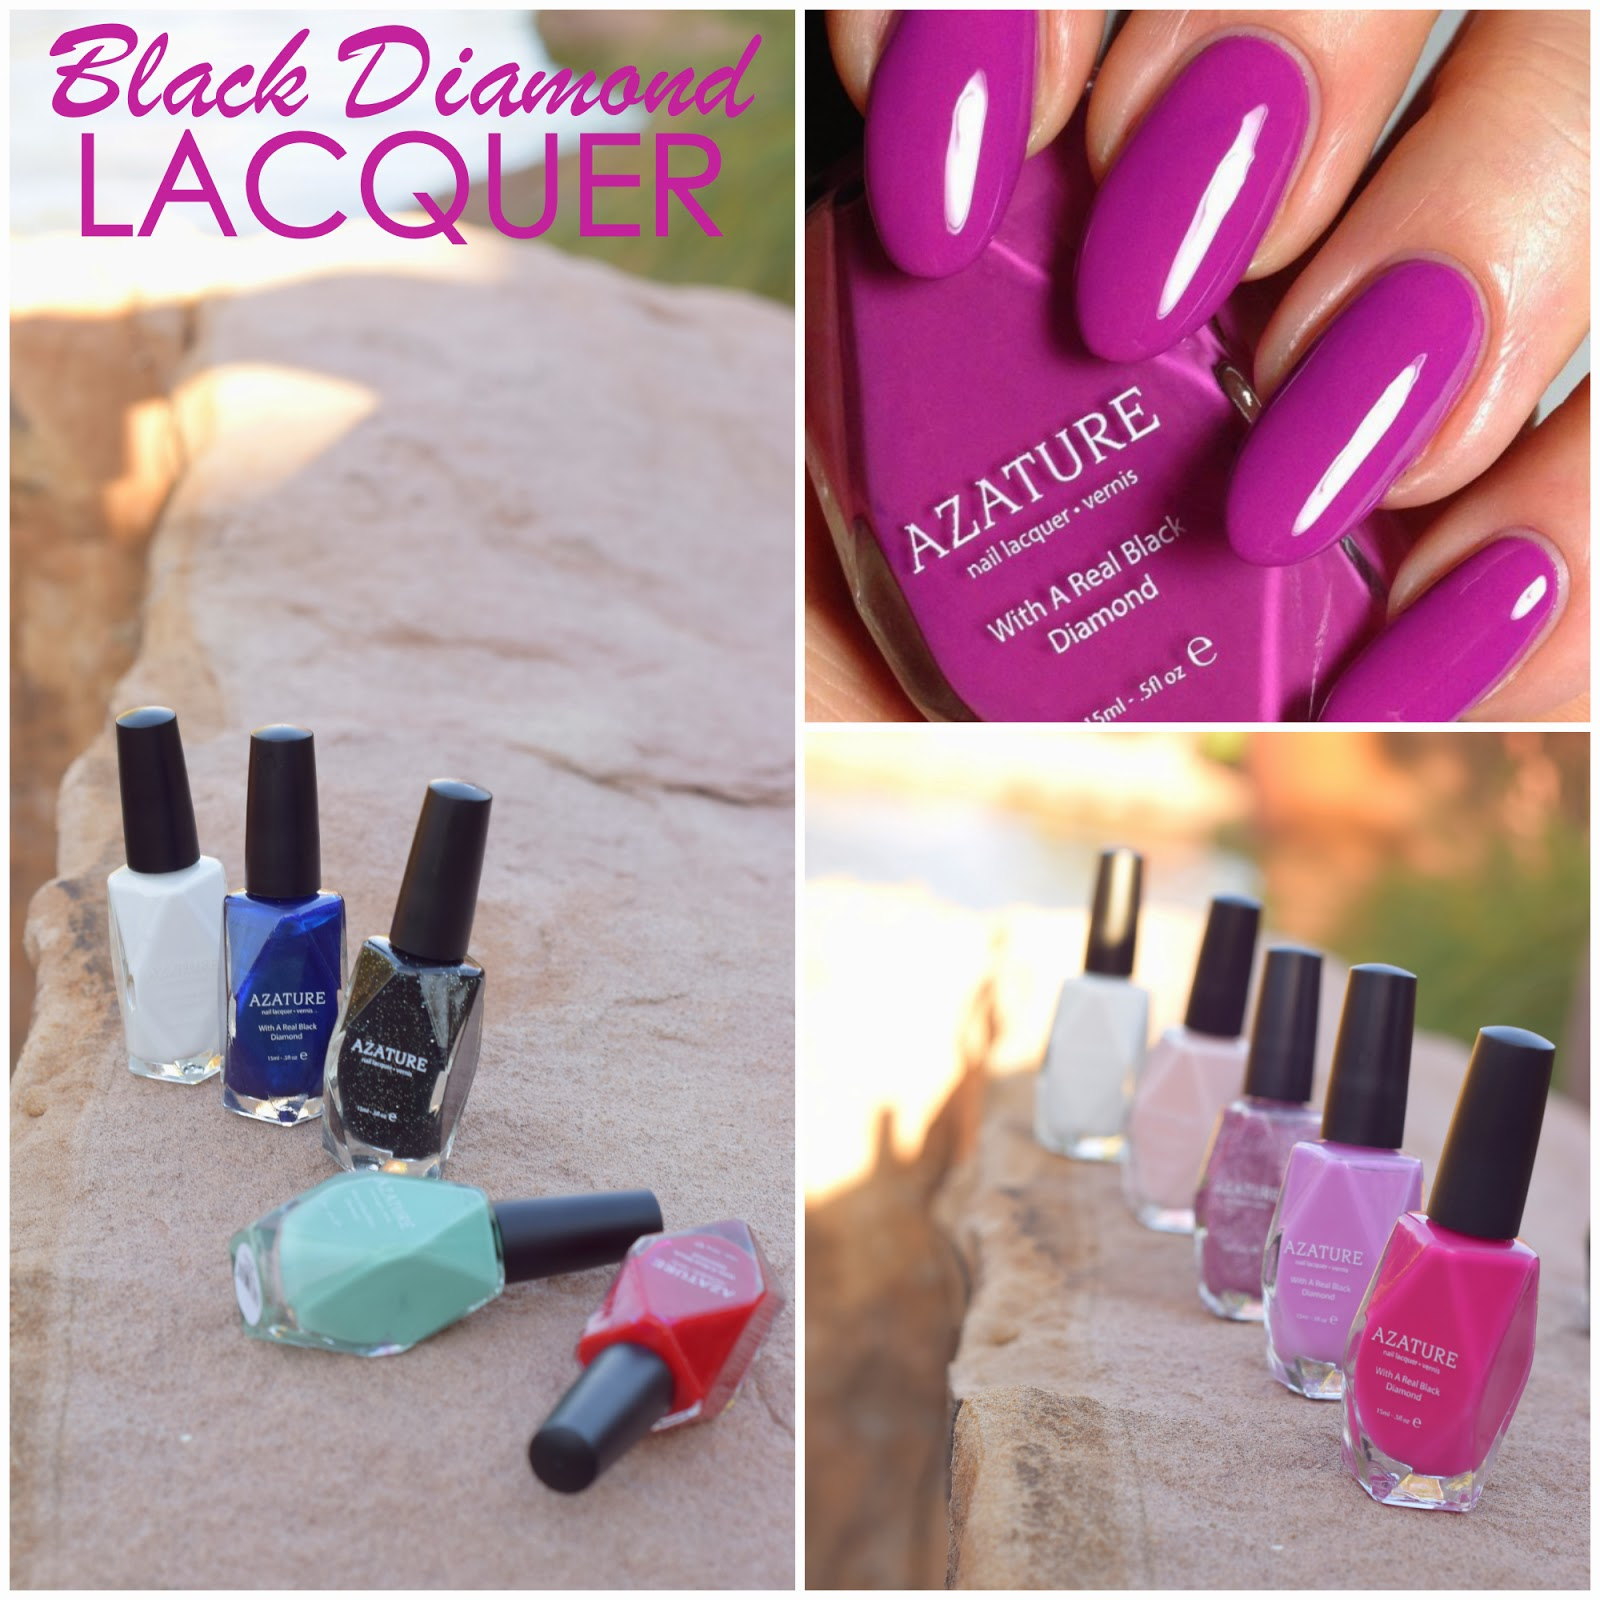 Azature Black Diamond nail lacquer, luxury nail polish, expensive nail polish, designer nail color